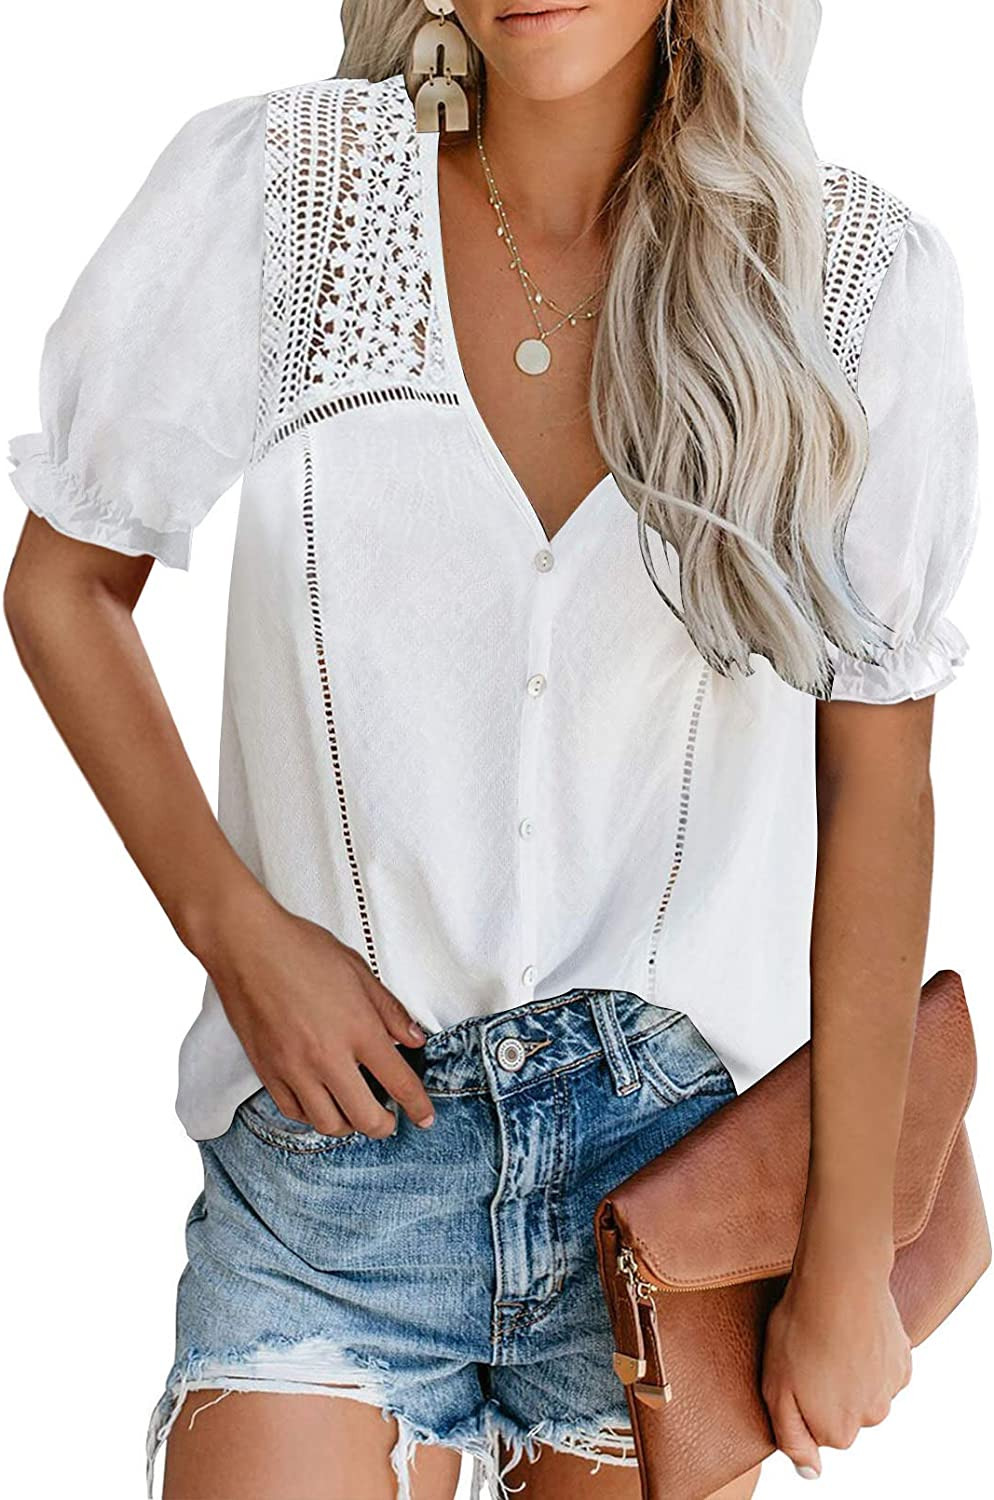 HOTAPEI Women's Sexy Floral Tee Top Loose Short Sleeve Blouse Lace Hollow High Neck Fafhion Shirts